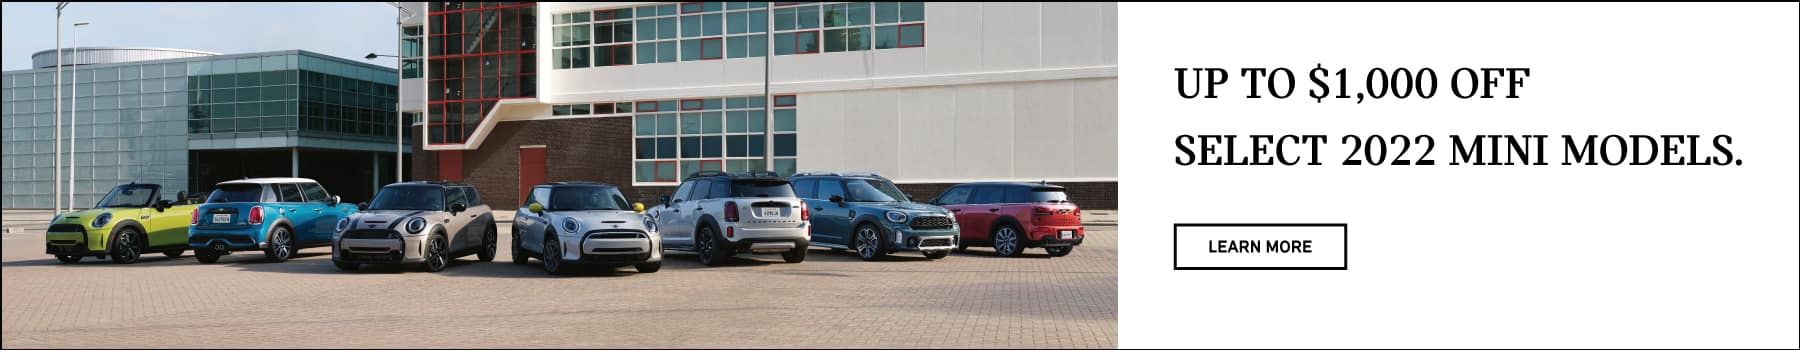 Up to $1,000 off select 2022 MINI models. Click to learn more. Image shows a family of MINI vehicles parked on brick.